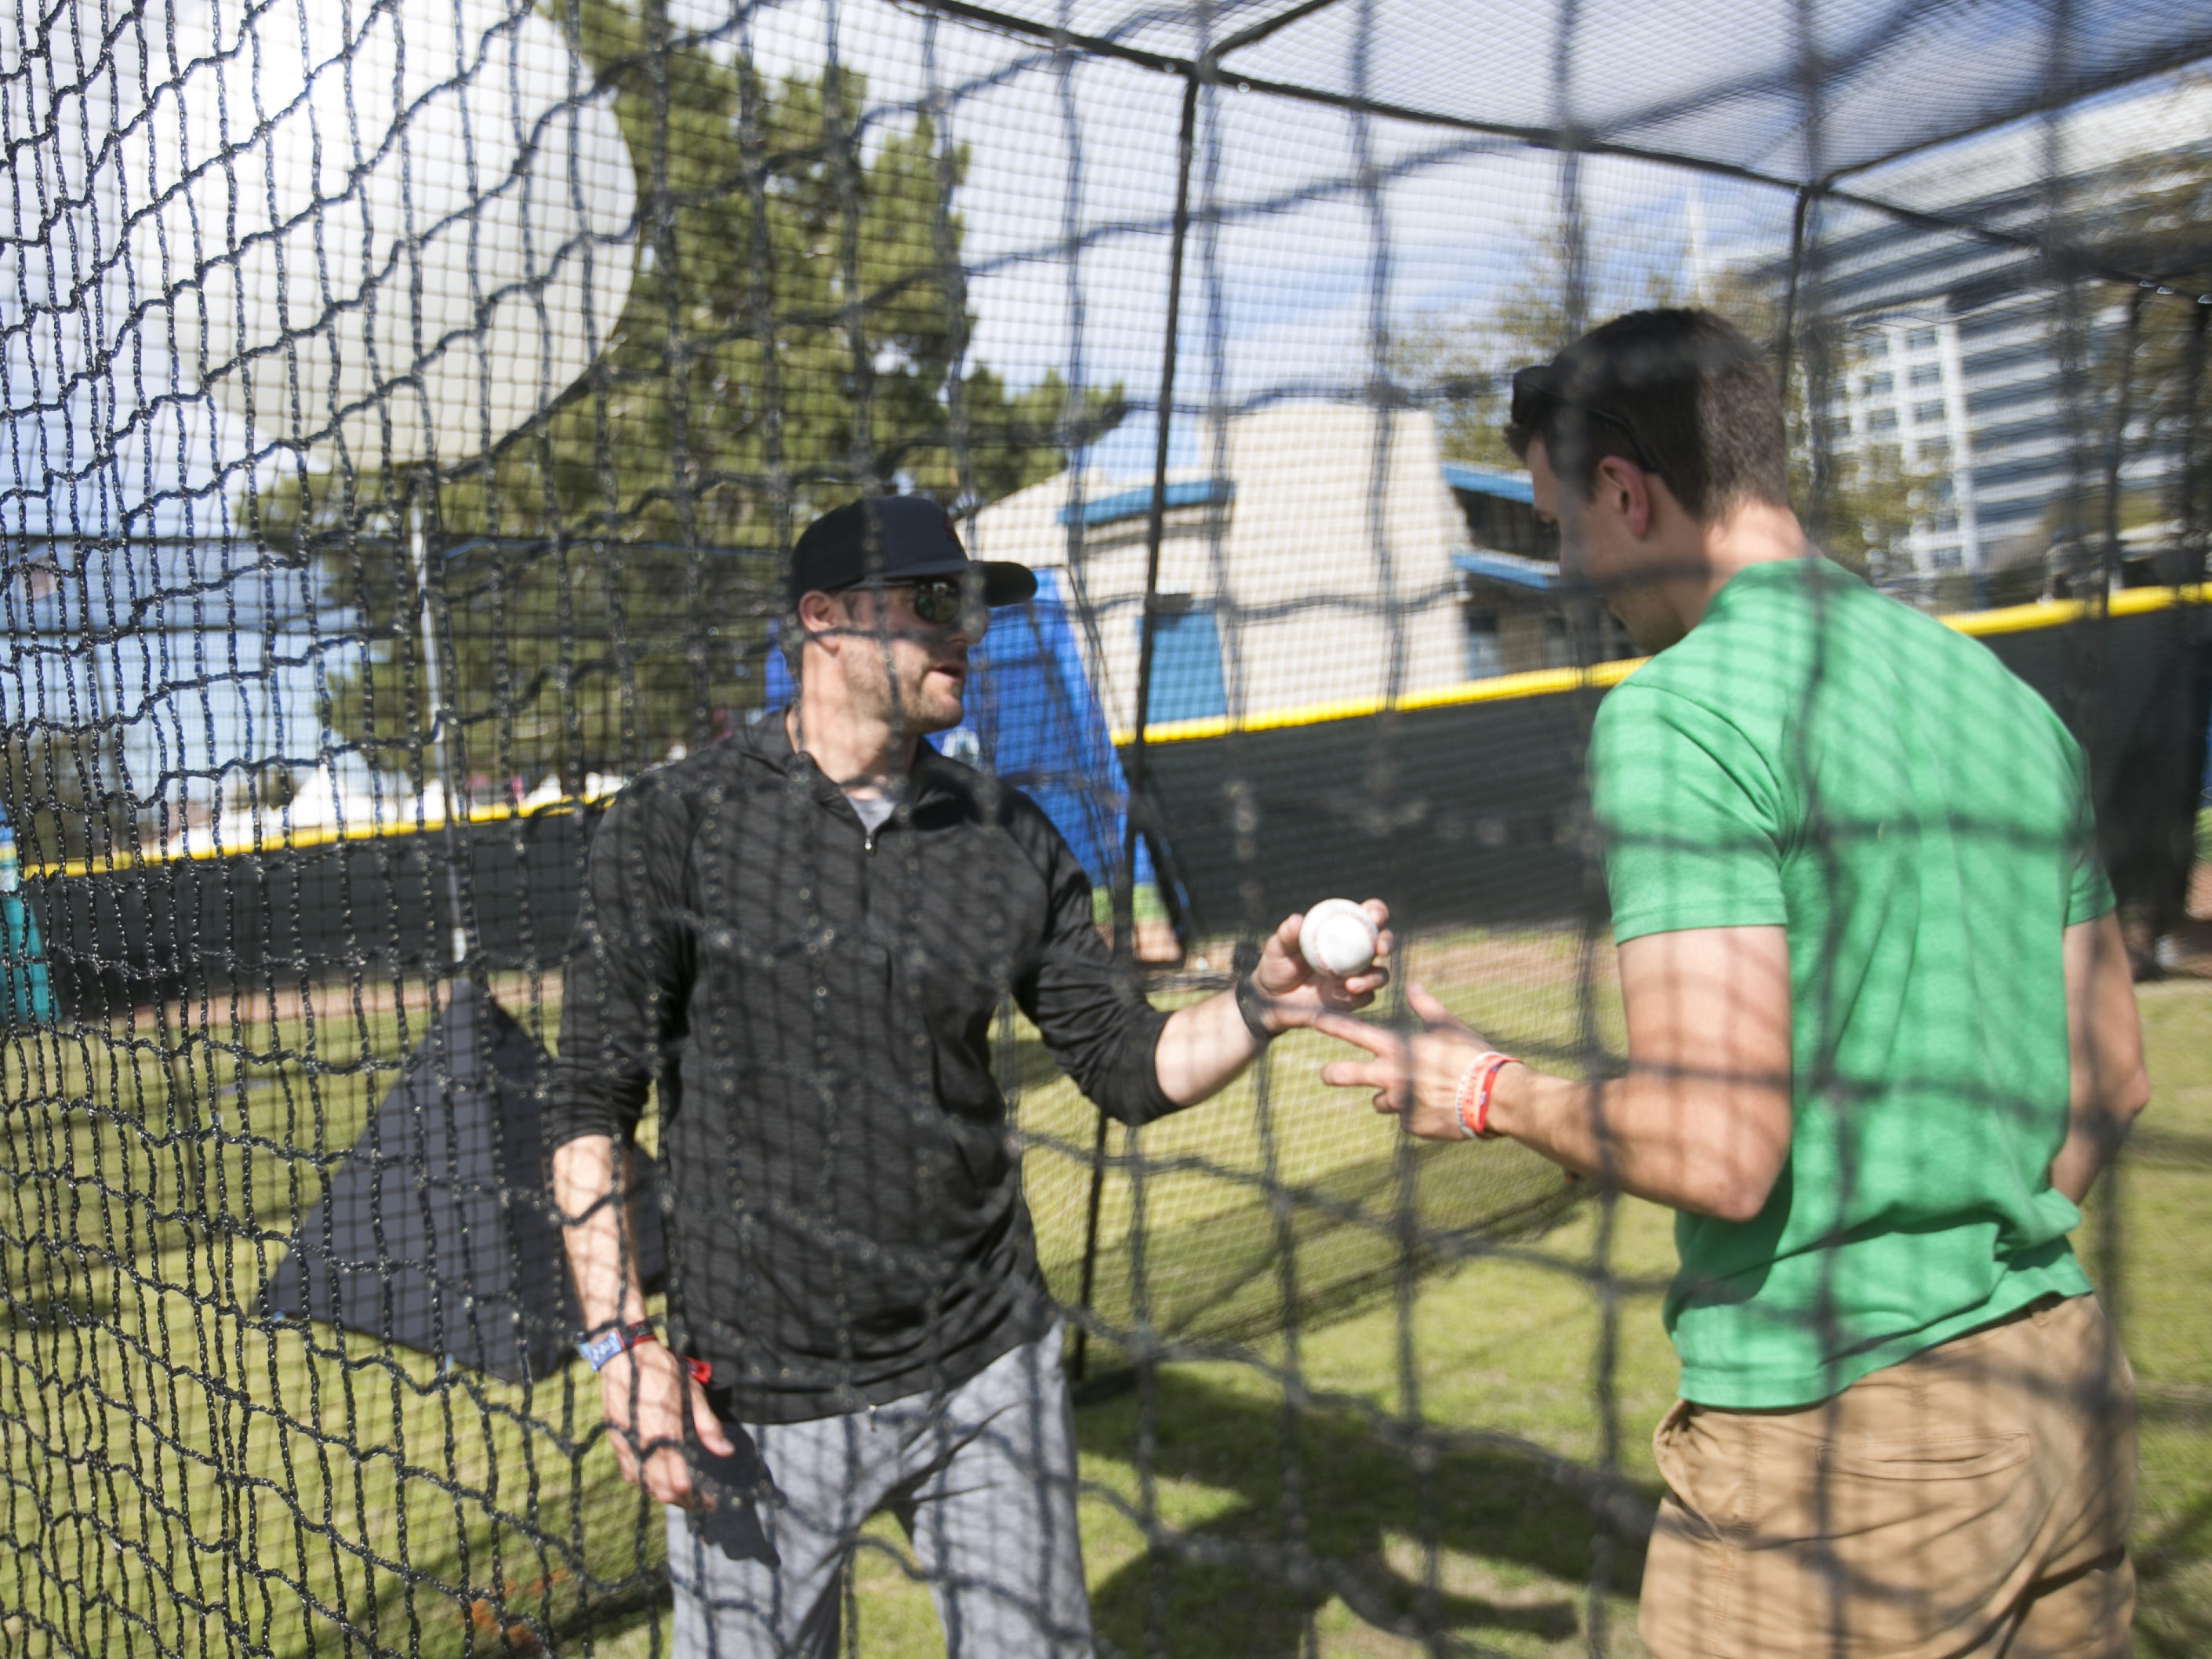 Former MLB pitcher Shawn Estes (left) shows Nick Luongo (right) pitching techniques at the Innings Festival at Tempe Beach Park on Saturday, March 2, 2019.